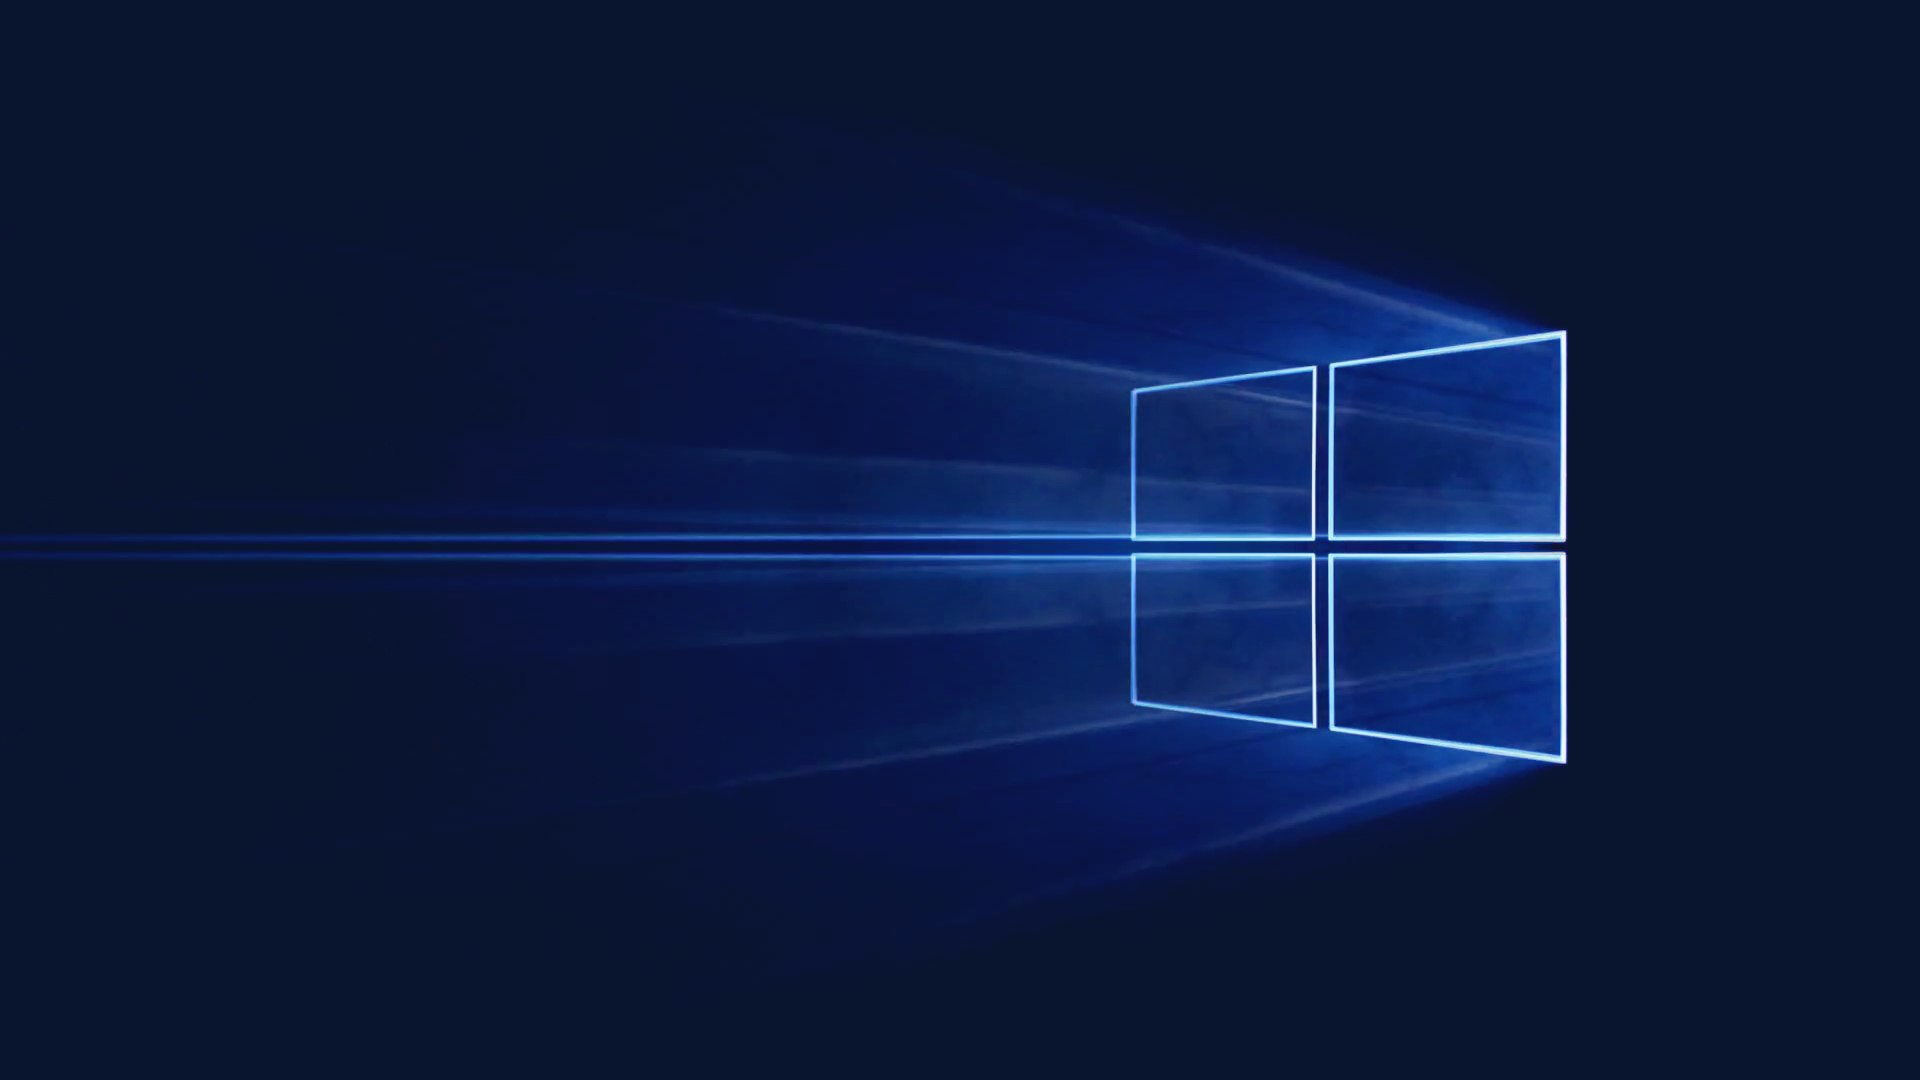 Free Download Windows 10 Official Wallpaper 4k Wallpapers